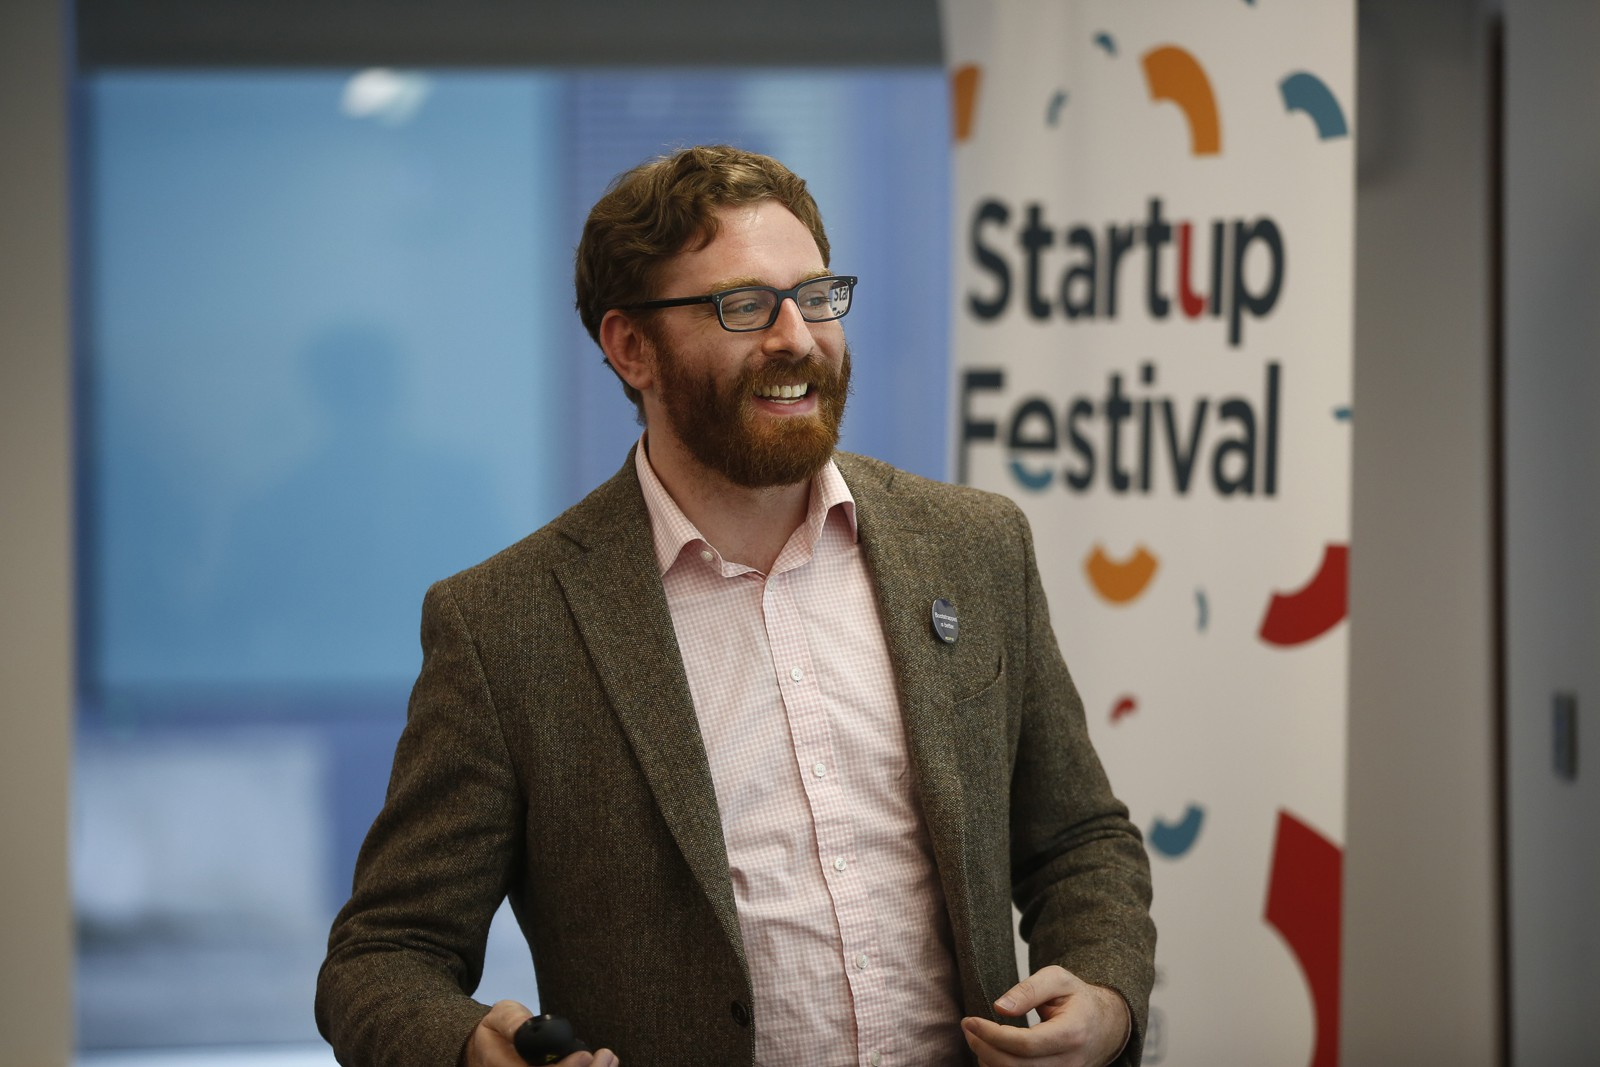 Ben Spigel at the Startup Festival